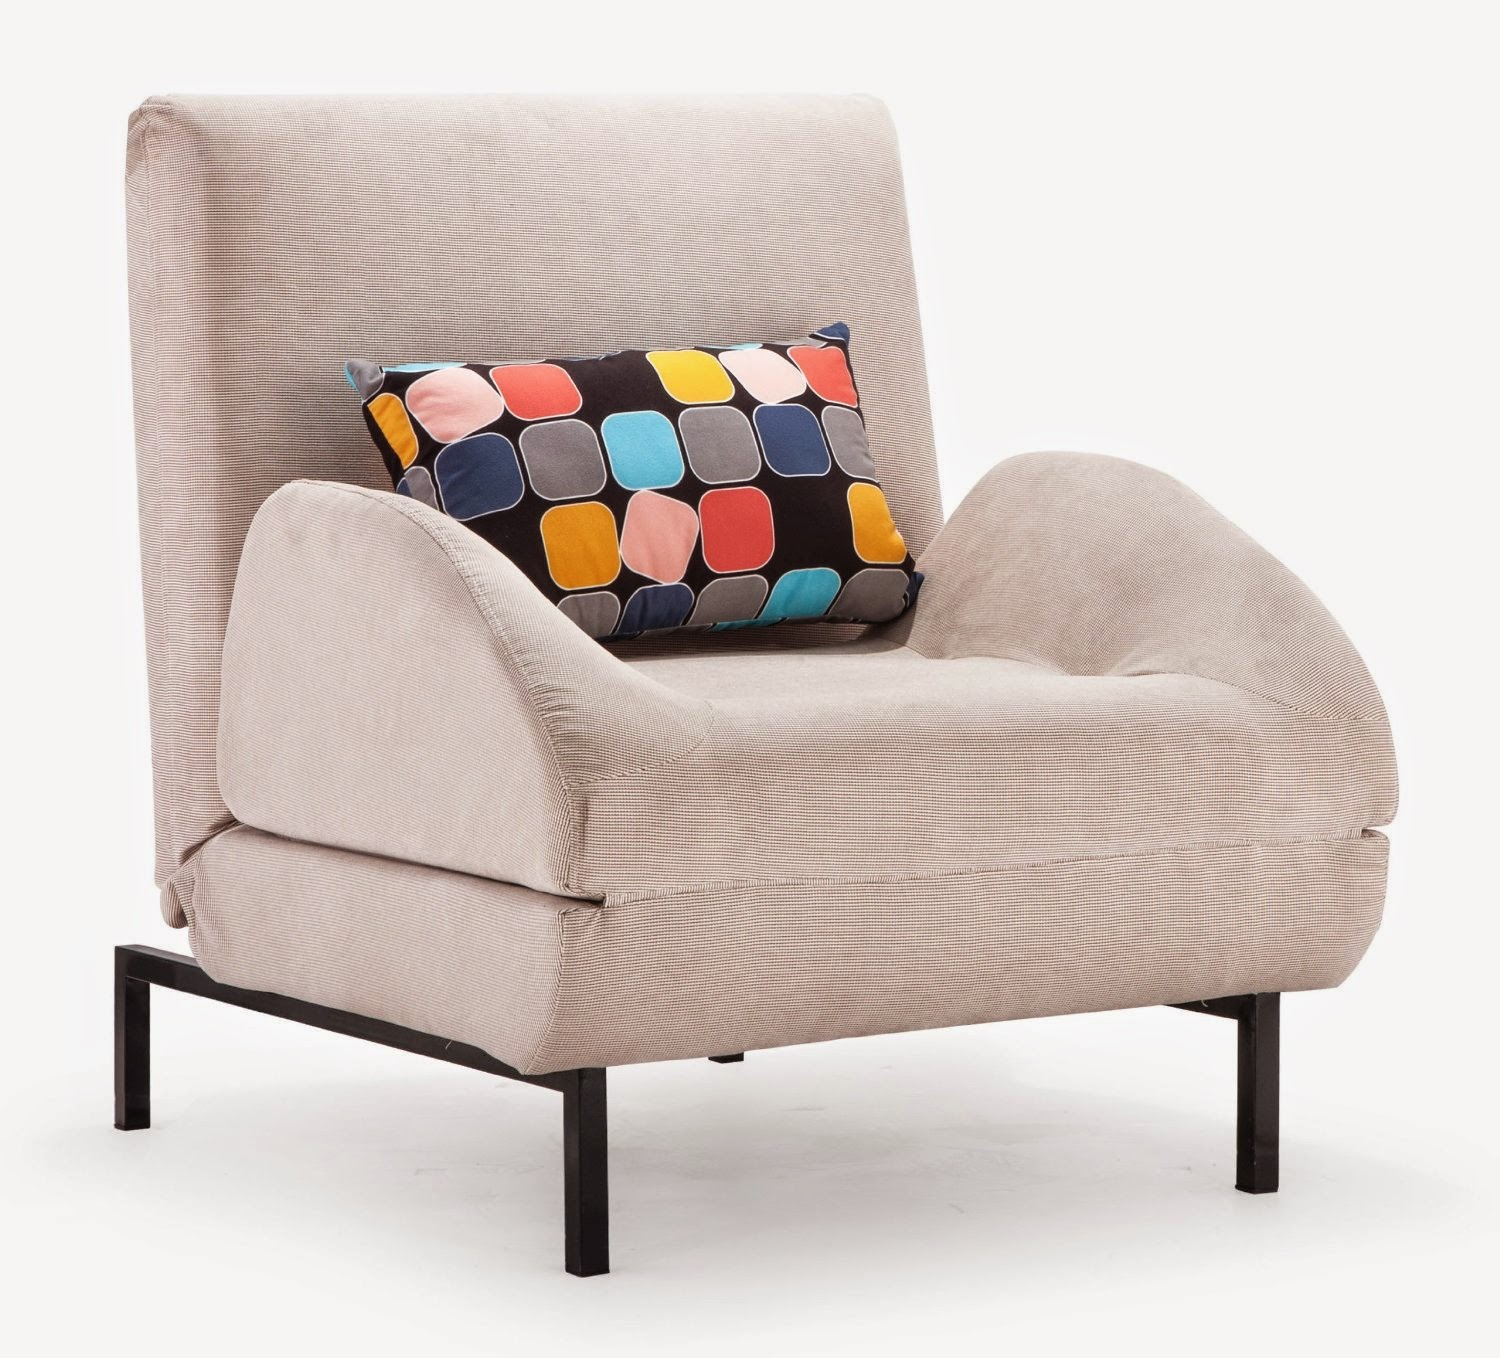 Image of: Small Twin Size Sleeper Chair